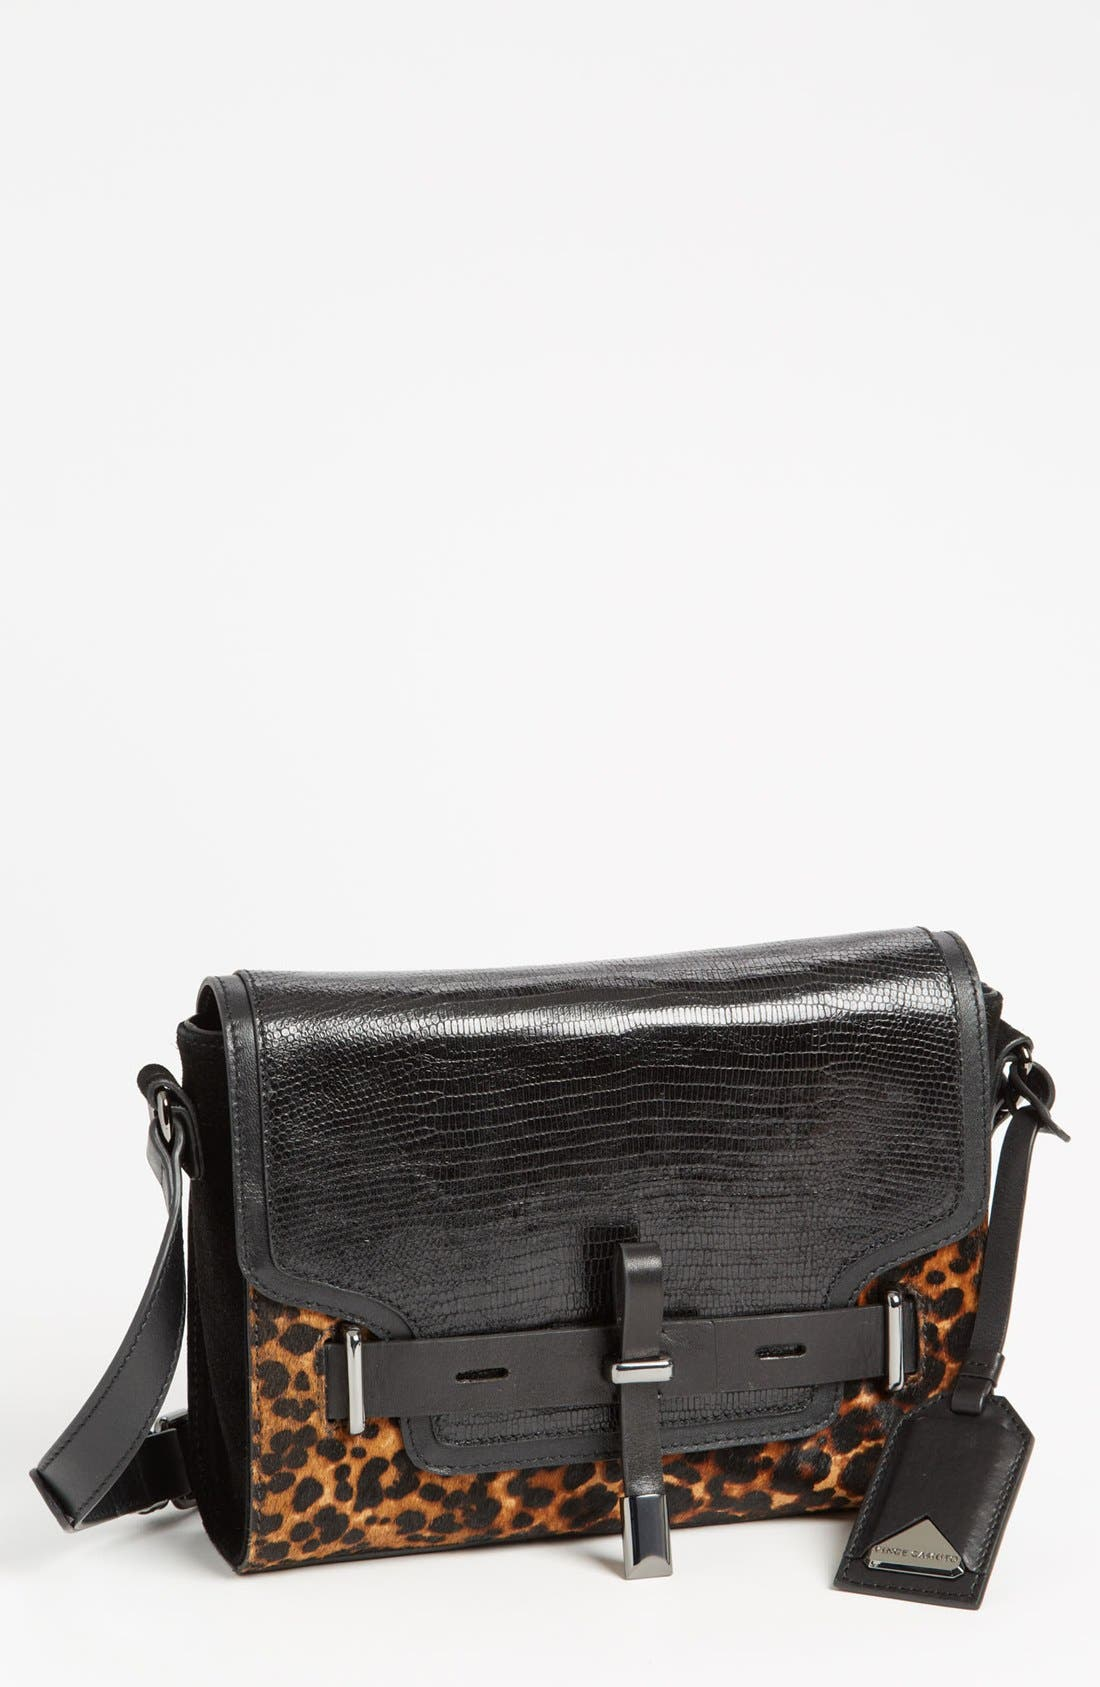 Alternate Image 1 Selected - Vince Camuto 'Max' Leather Crossbody Bag, Small